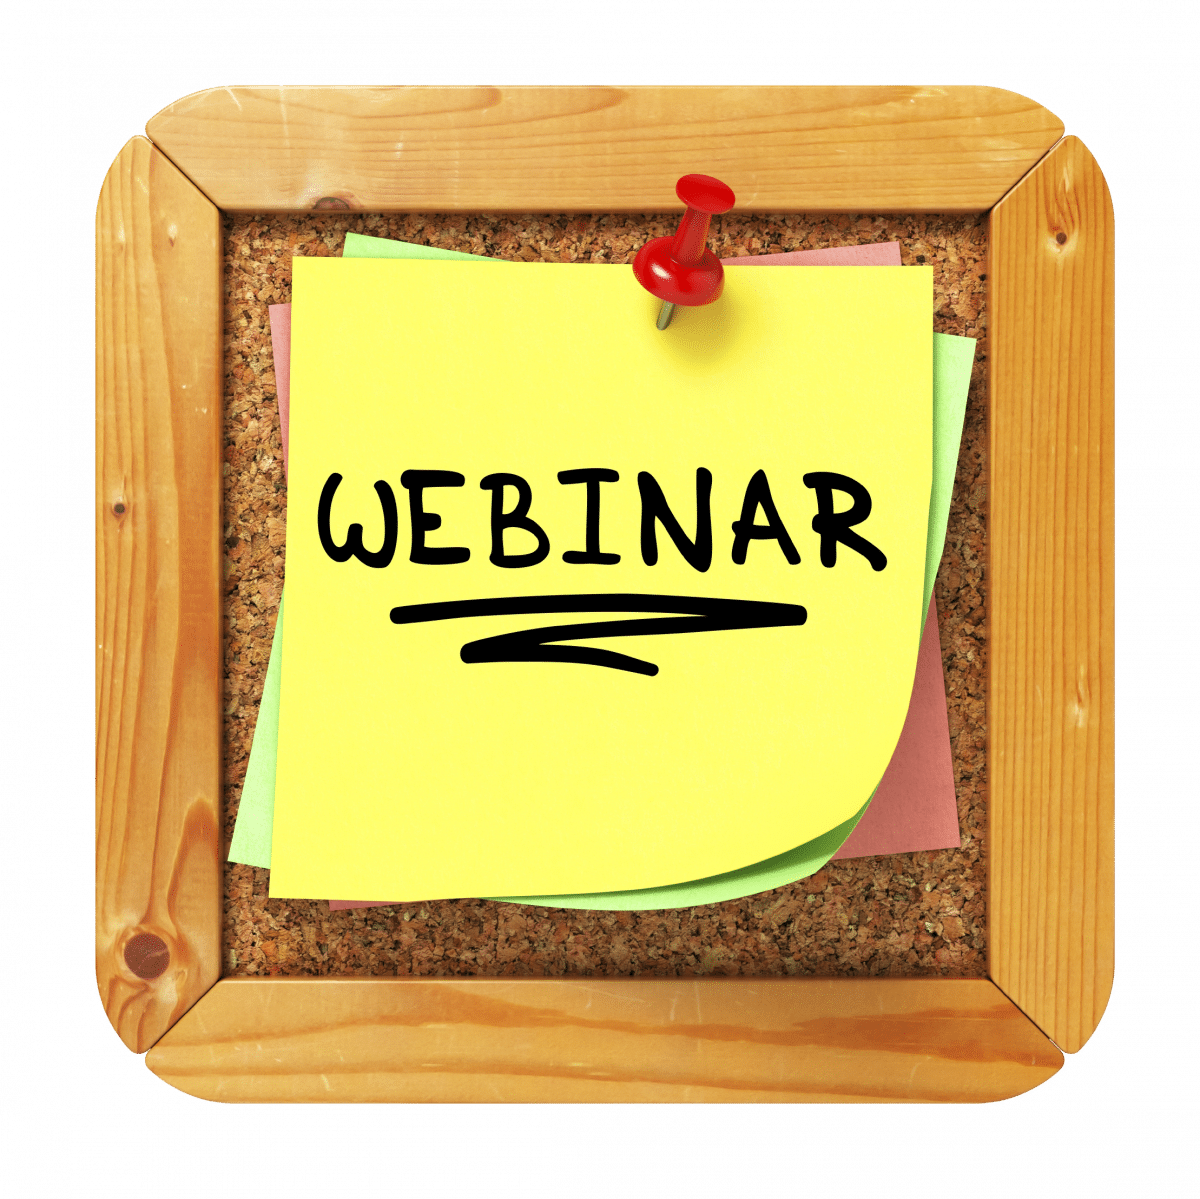 Webinar - Backendless Webinars